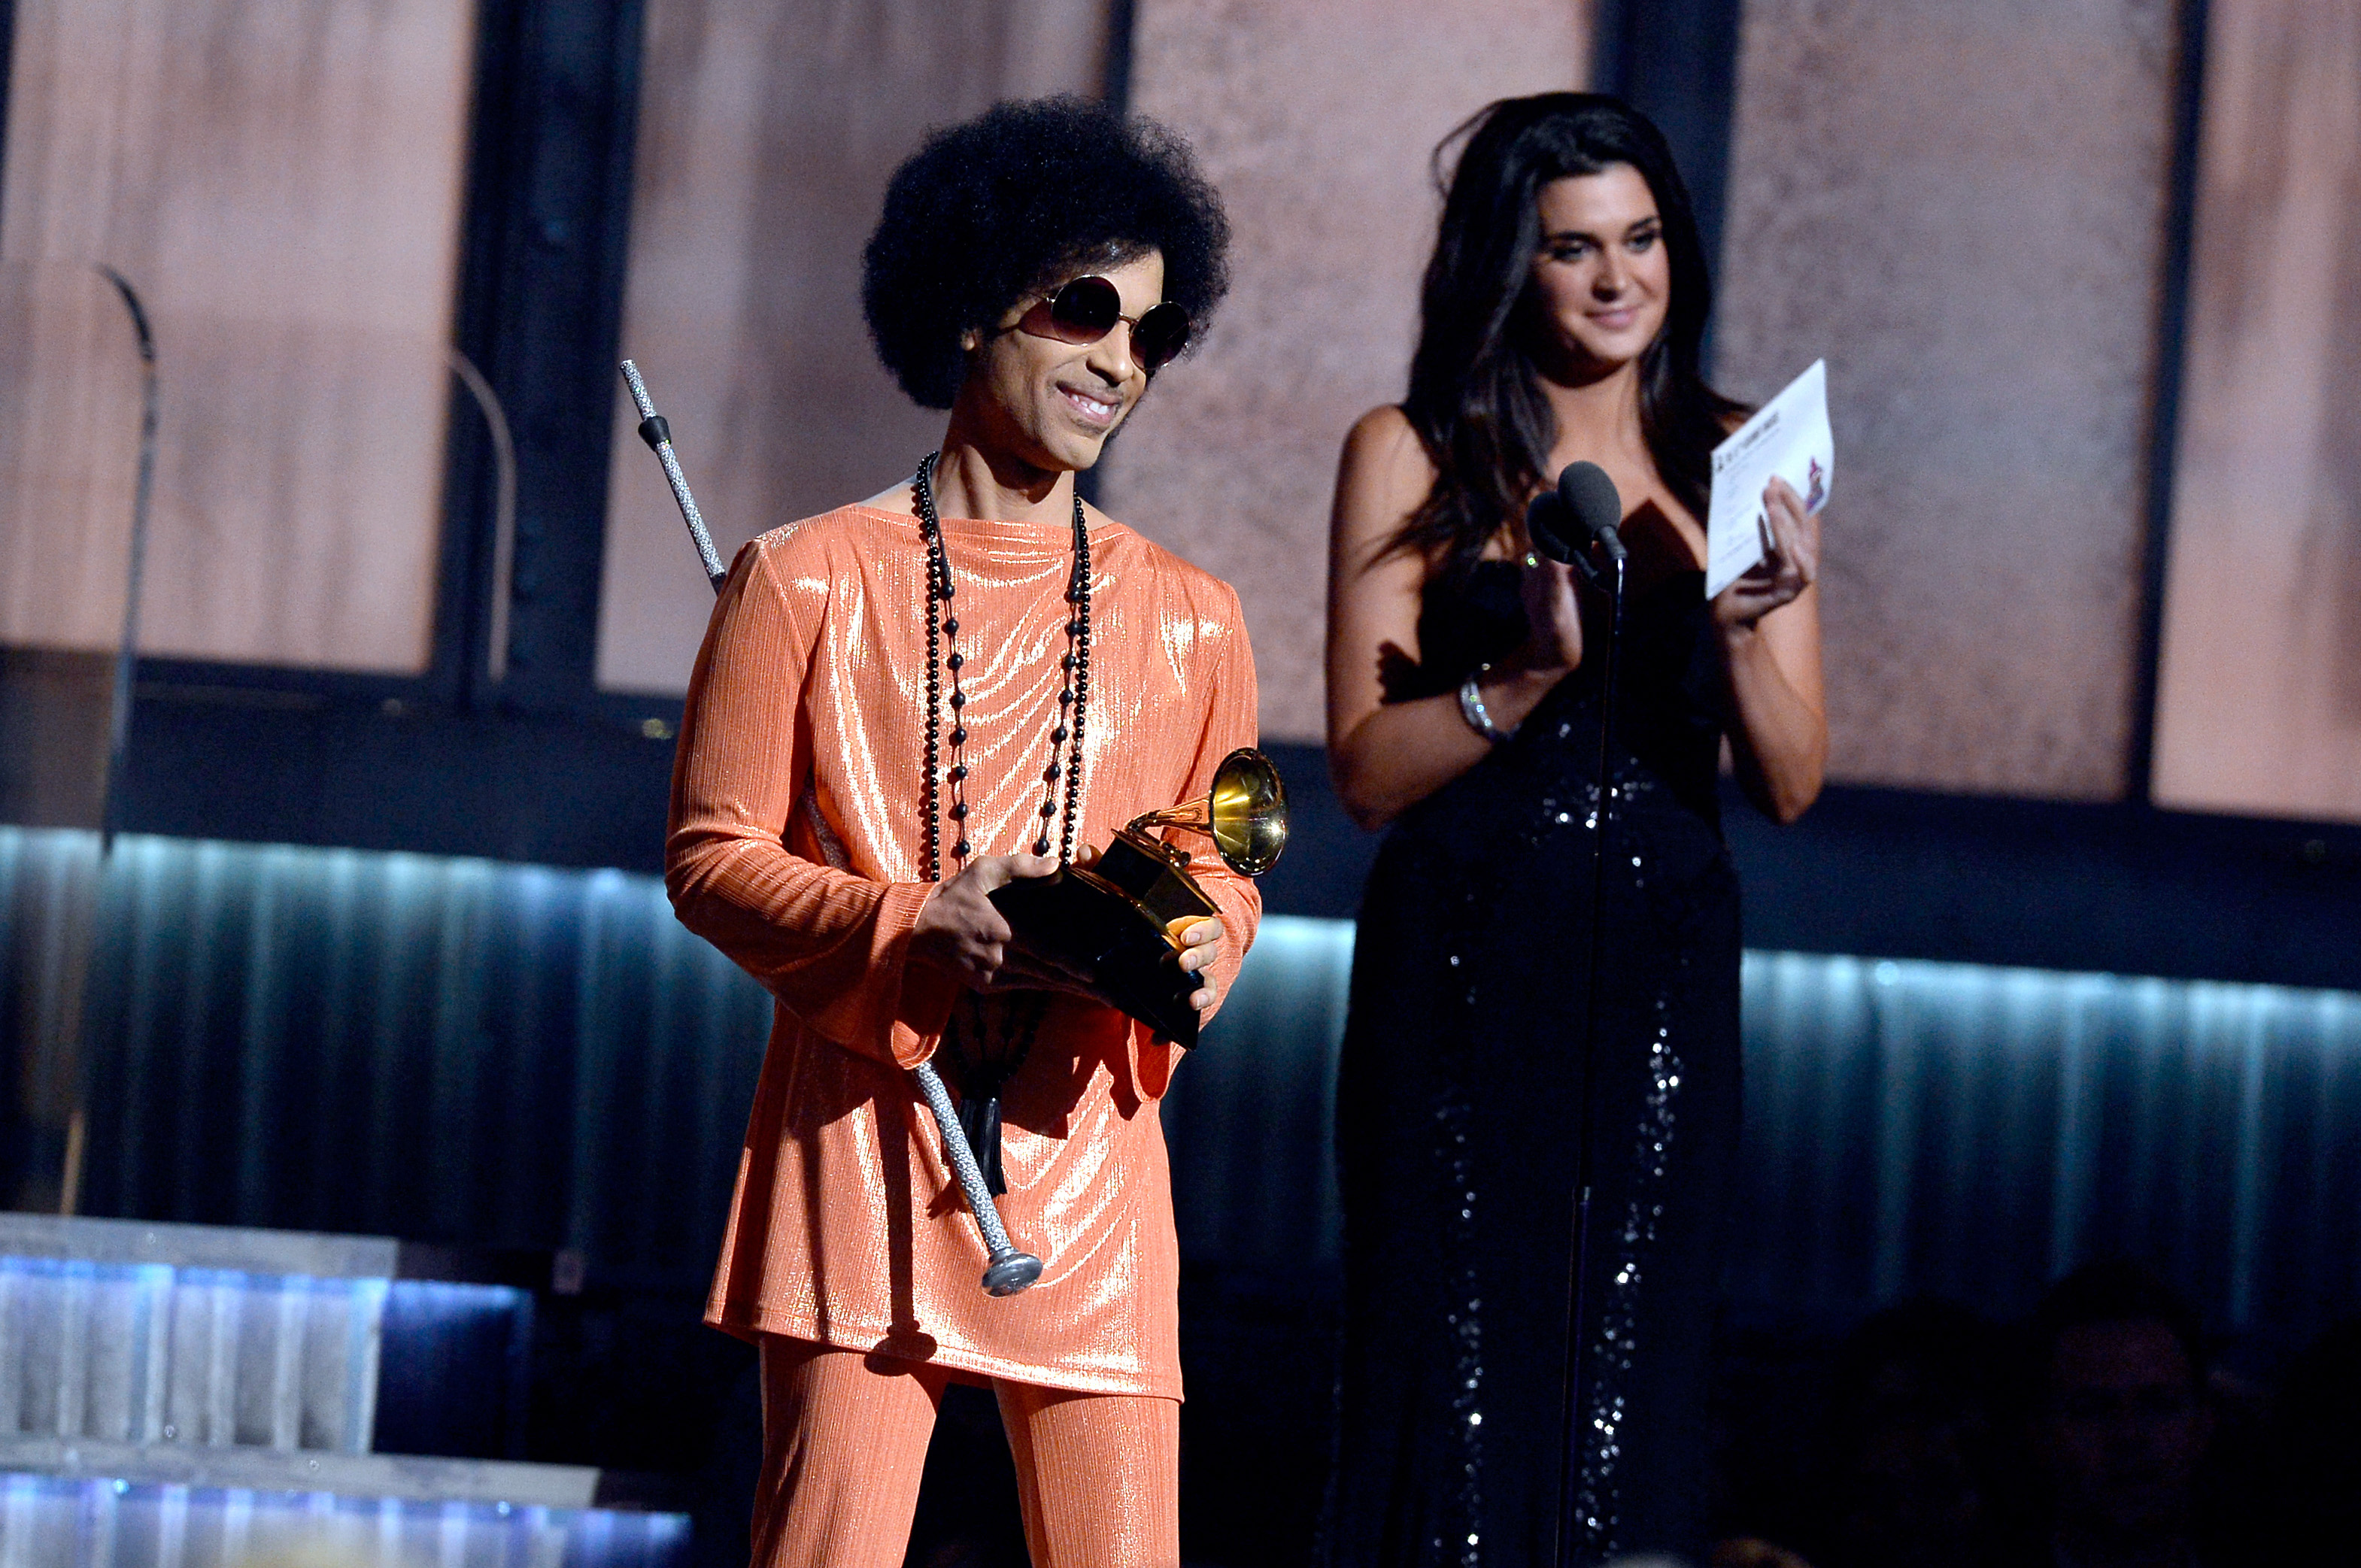 Prince Compares Record Contracts To Slavery In Rare Meeting With Media